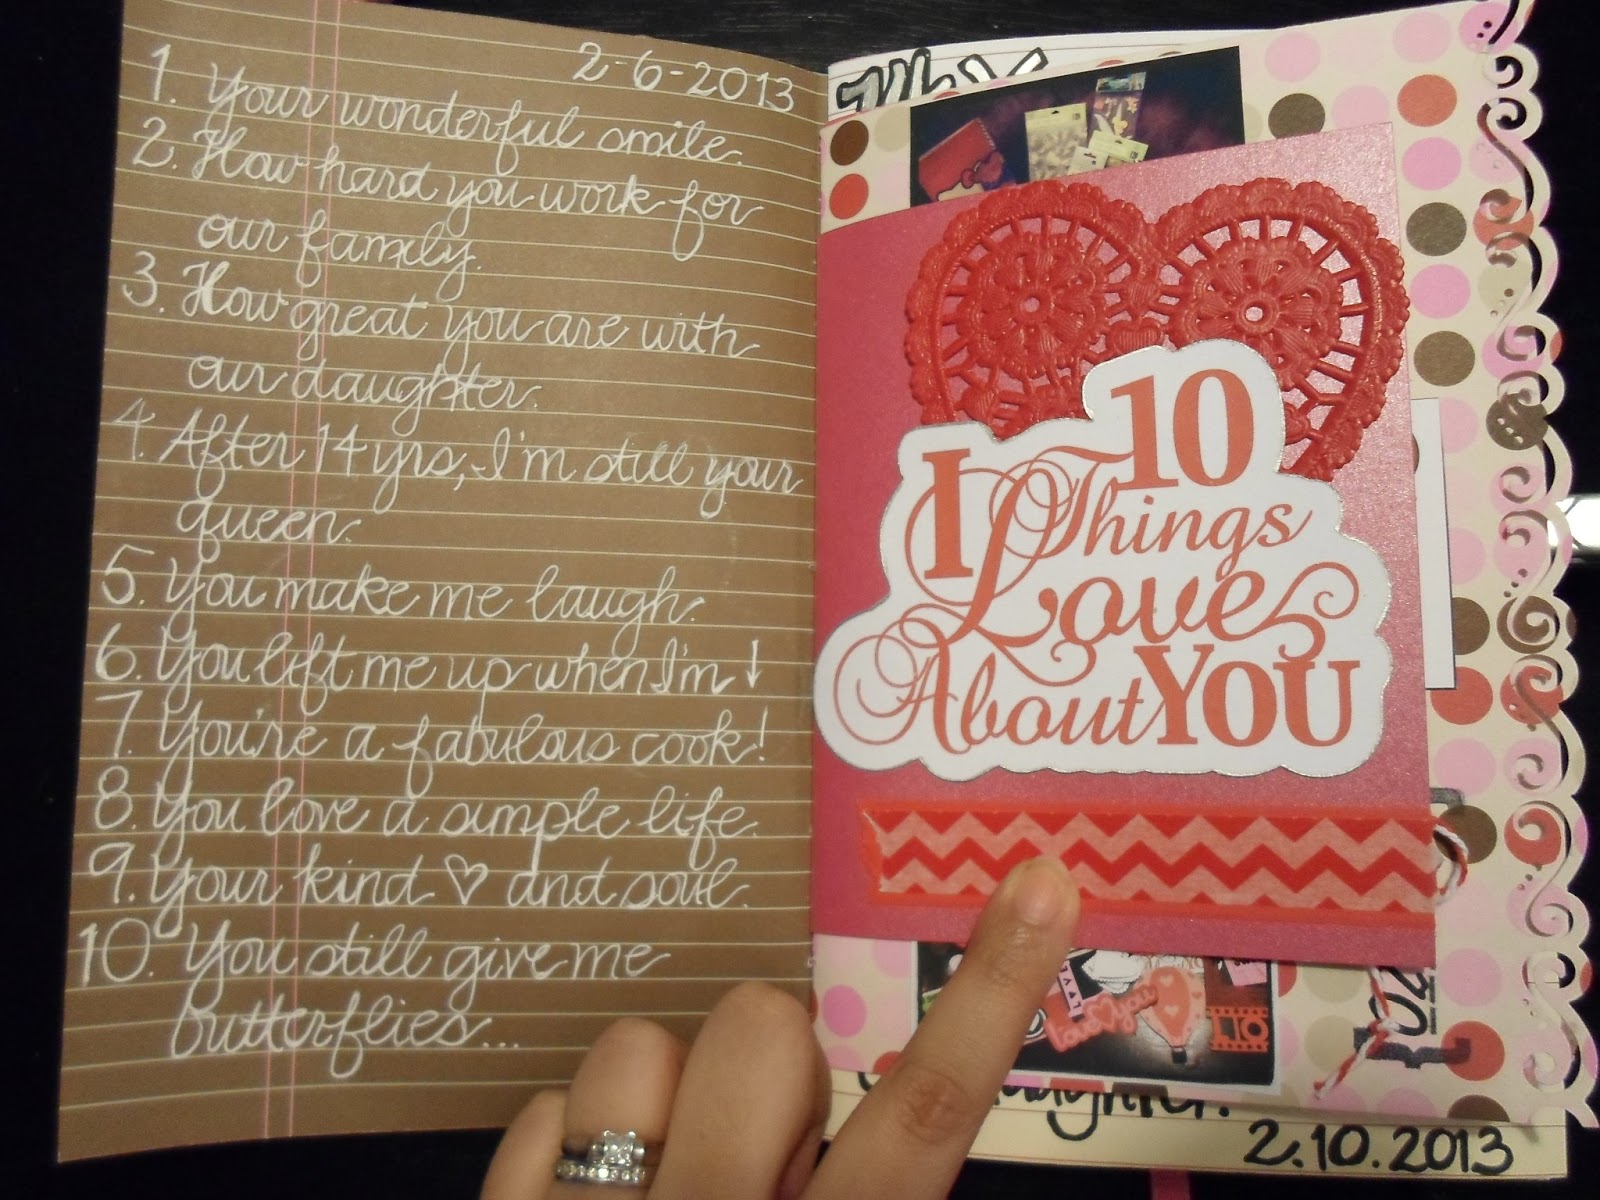 10 Things I Love About You: A Crafty Island Girl: Daybooks